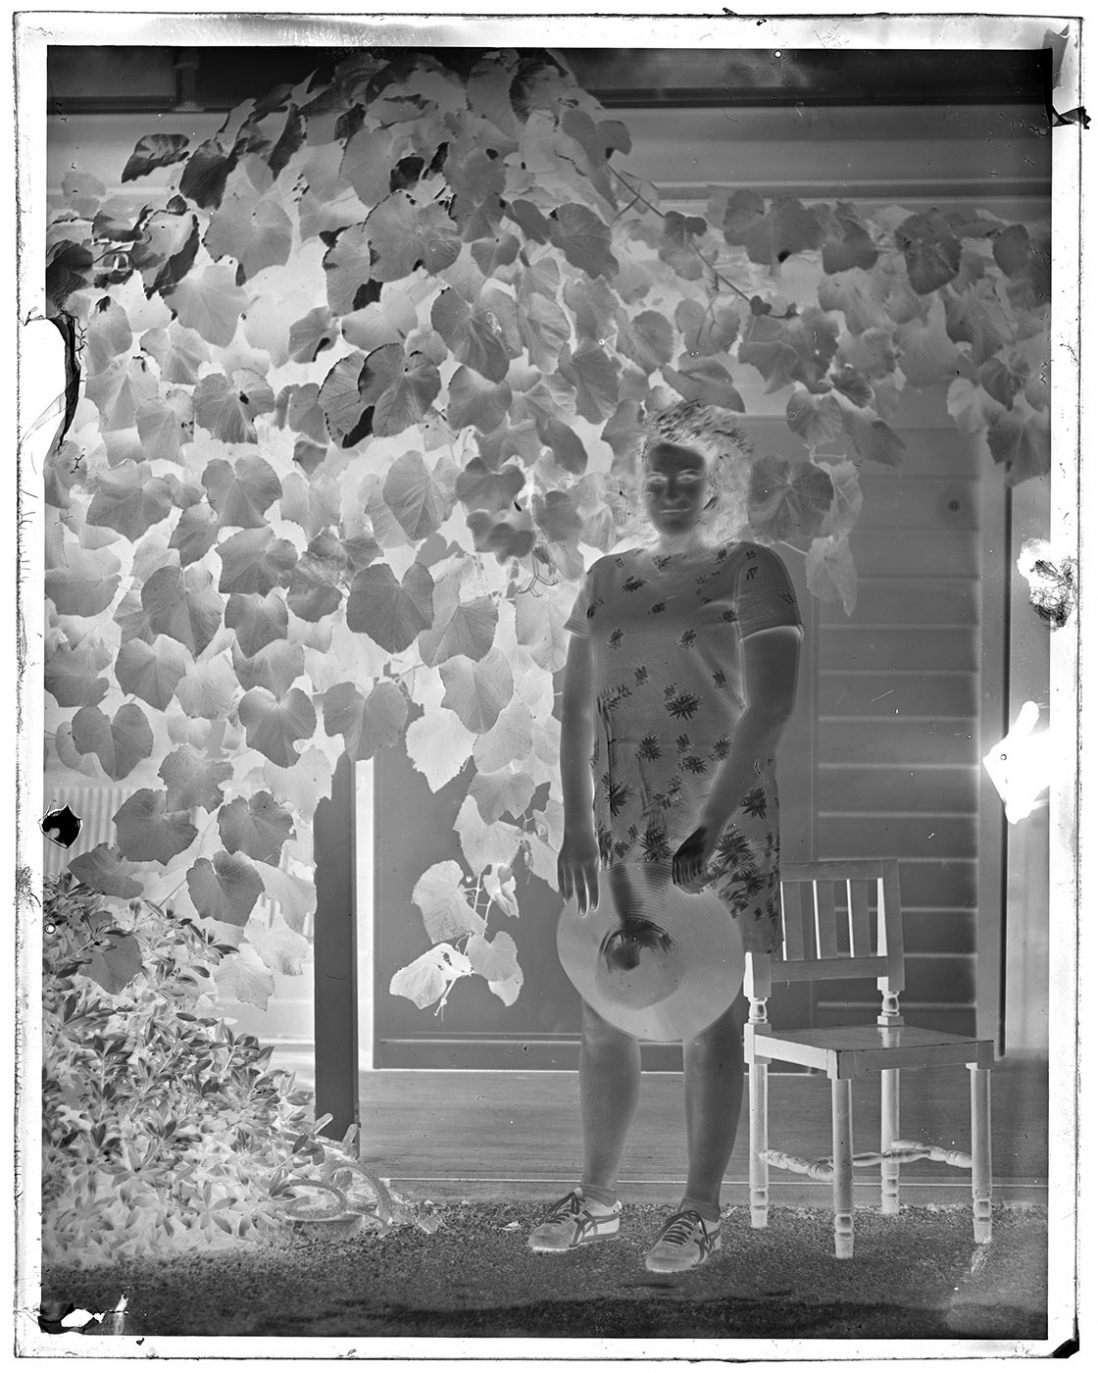 Black and white negative of woman standing in garden.